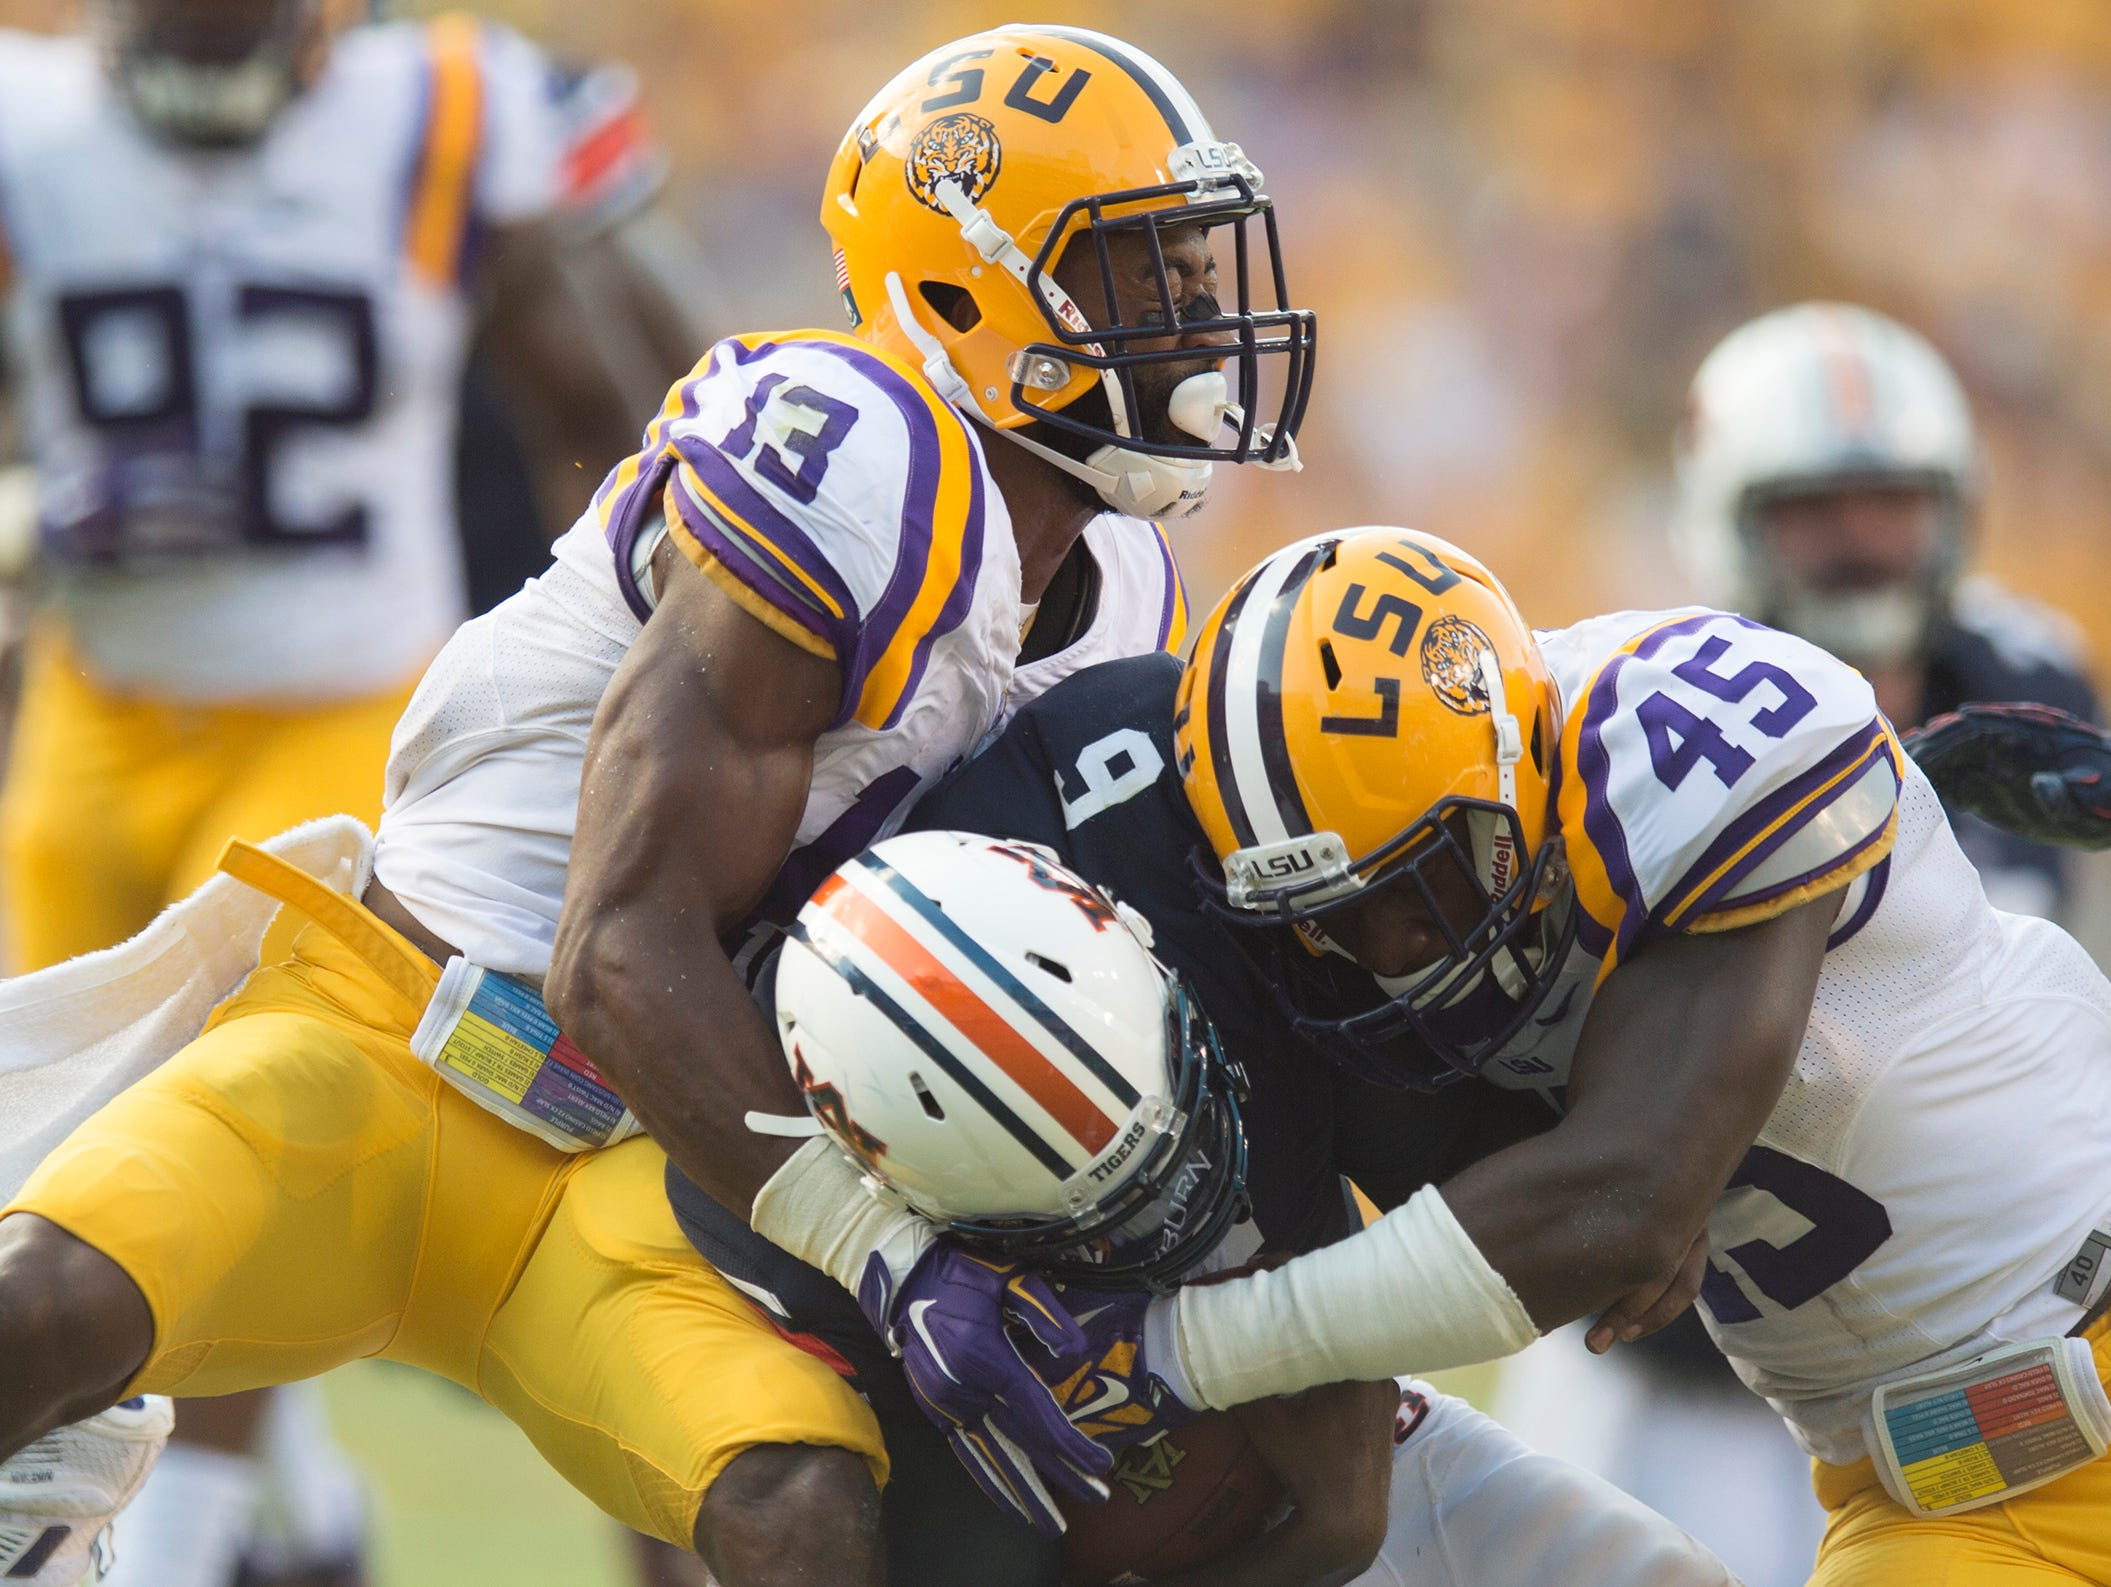 Louisiana State defensive back Dwayne Thomas (13) and Louisiana State linebacker Deion Jones (45) tackles Auburn Tigers quarterback Jeremy Johnson (6) during the NCAA football game between LSU Tigers and Auburn on Saturday, Sept. 19, 2015, at Tiger Stadium in Baton Rouge, La. LSU Tigers defeated Auburn Tigers 45-21.